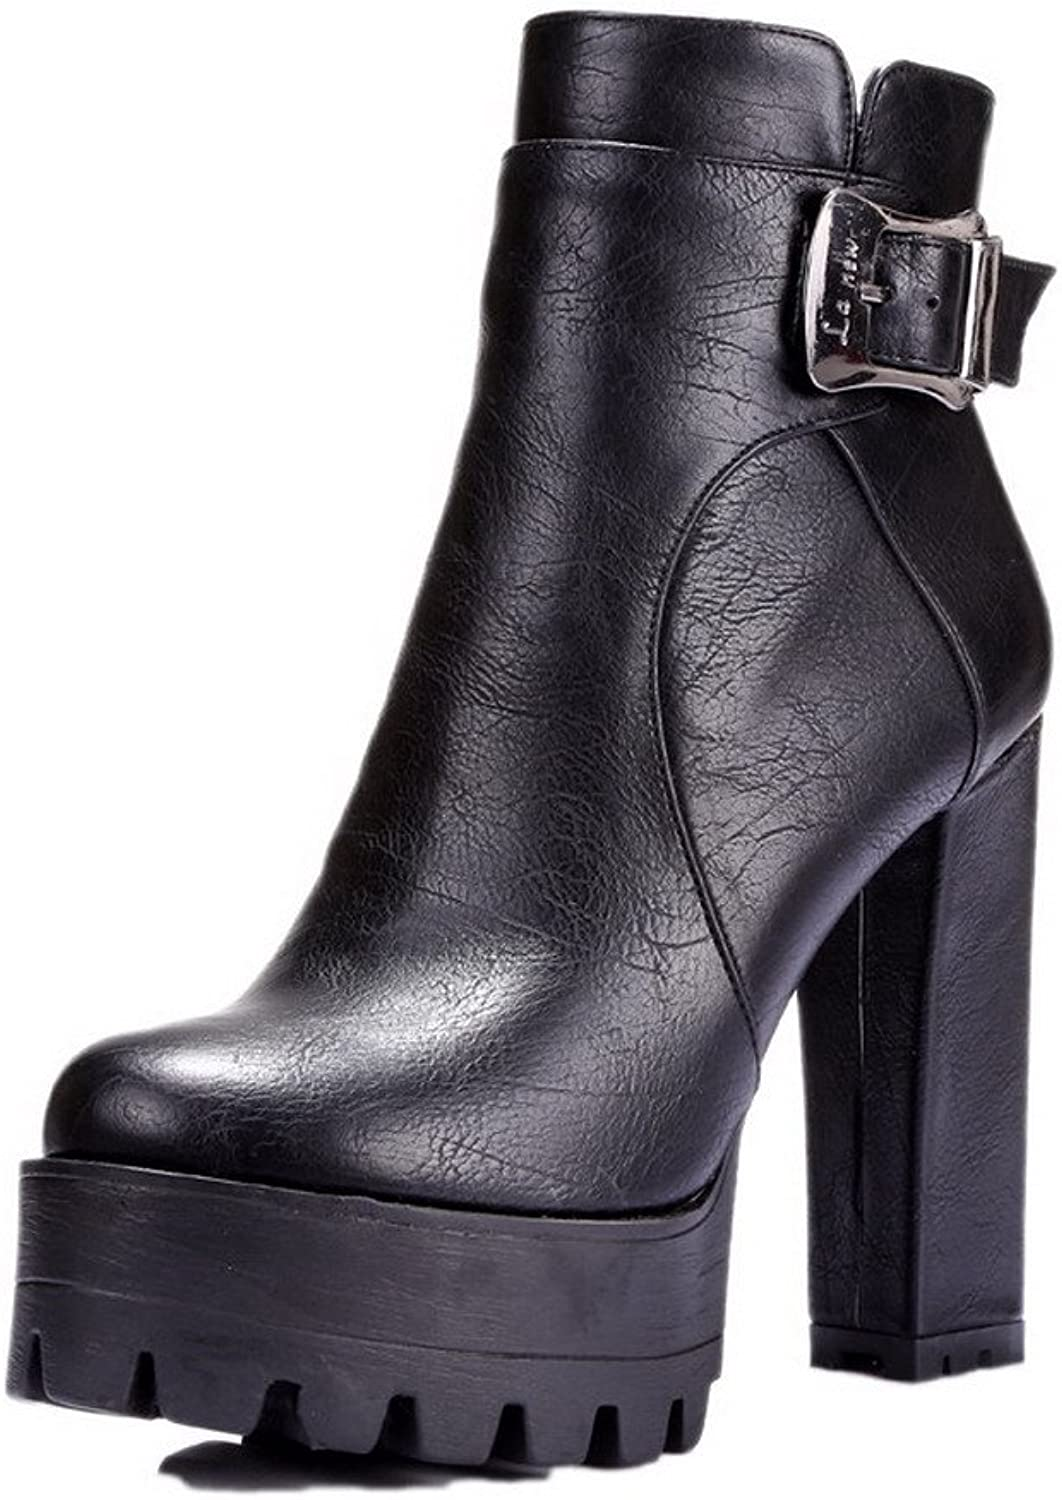 AmoonyFashion Women's Round-Toe Closed-Toe High-Heels Boots with Platform and Buckle